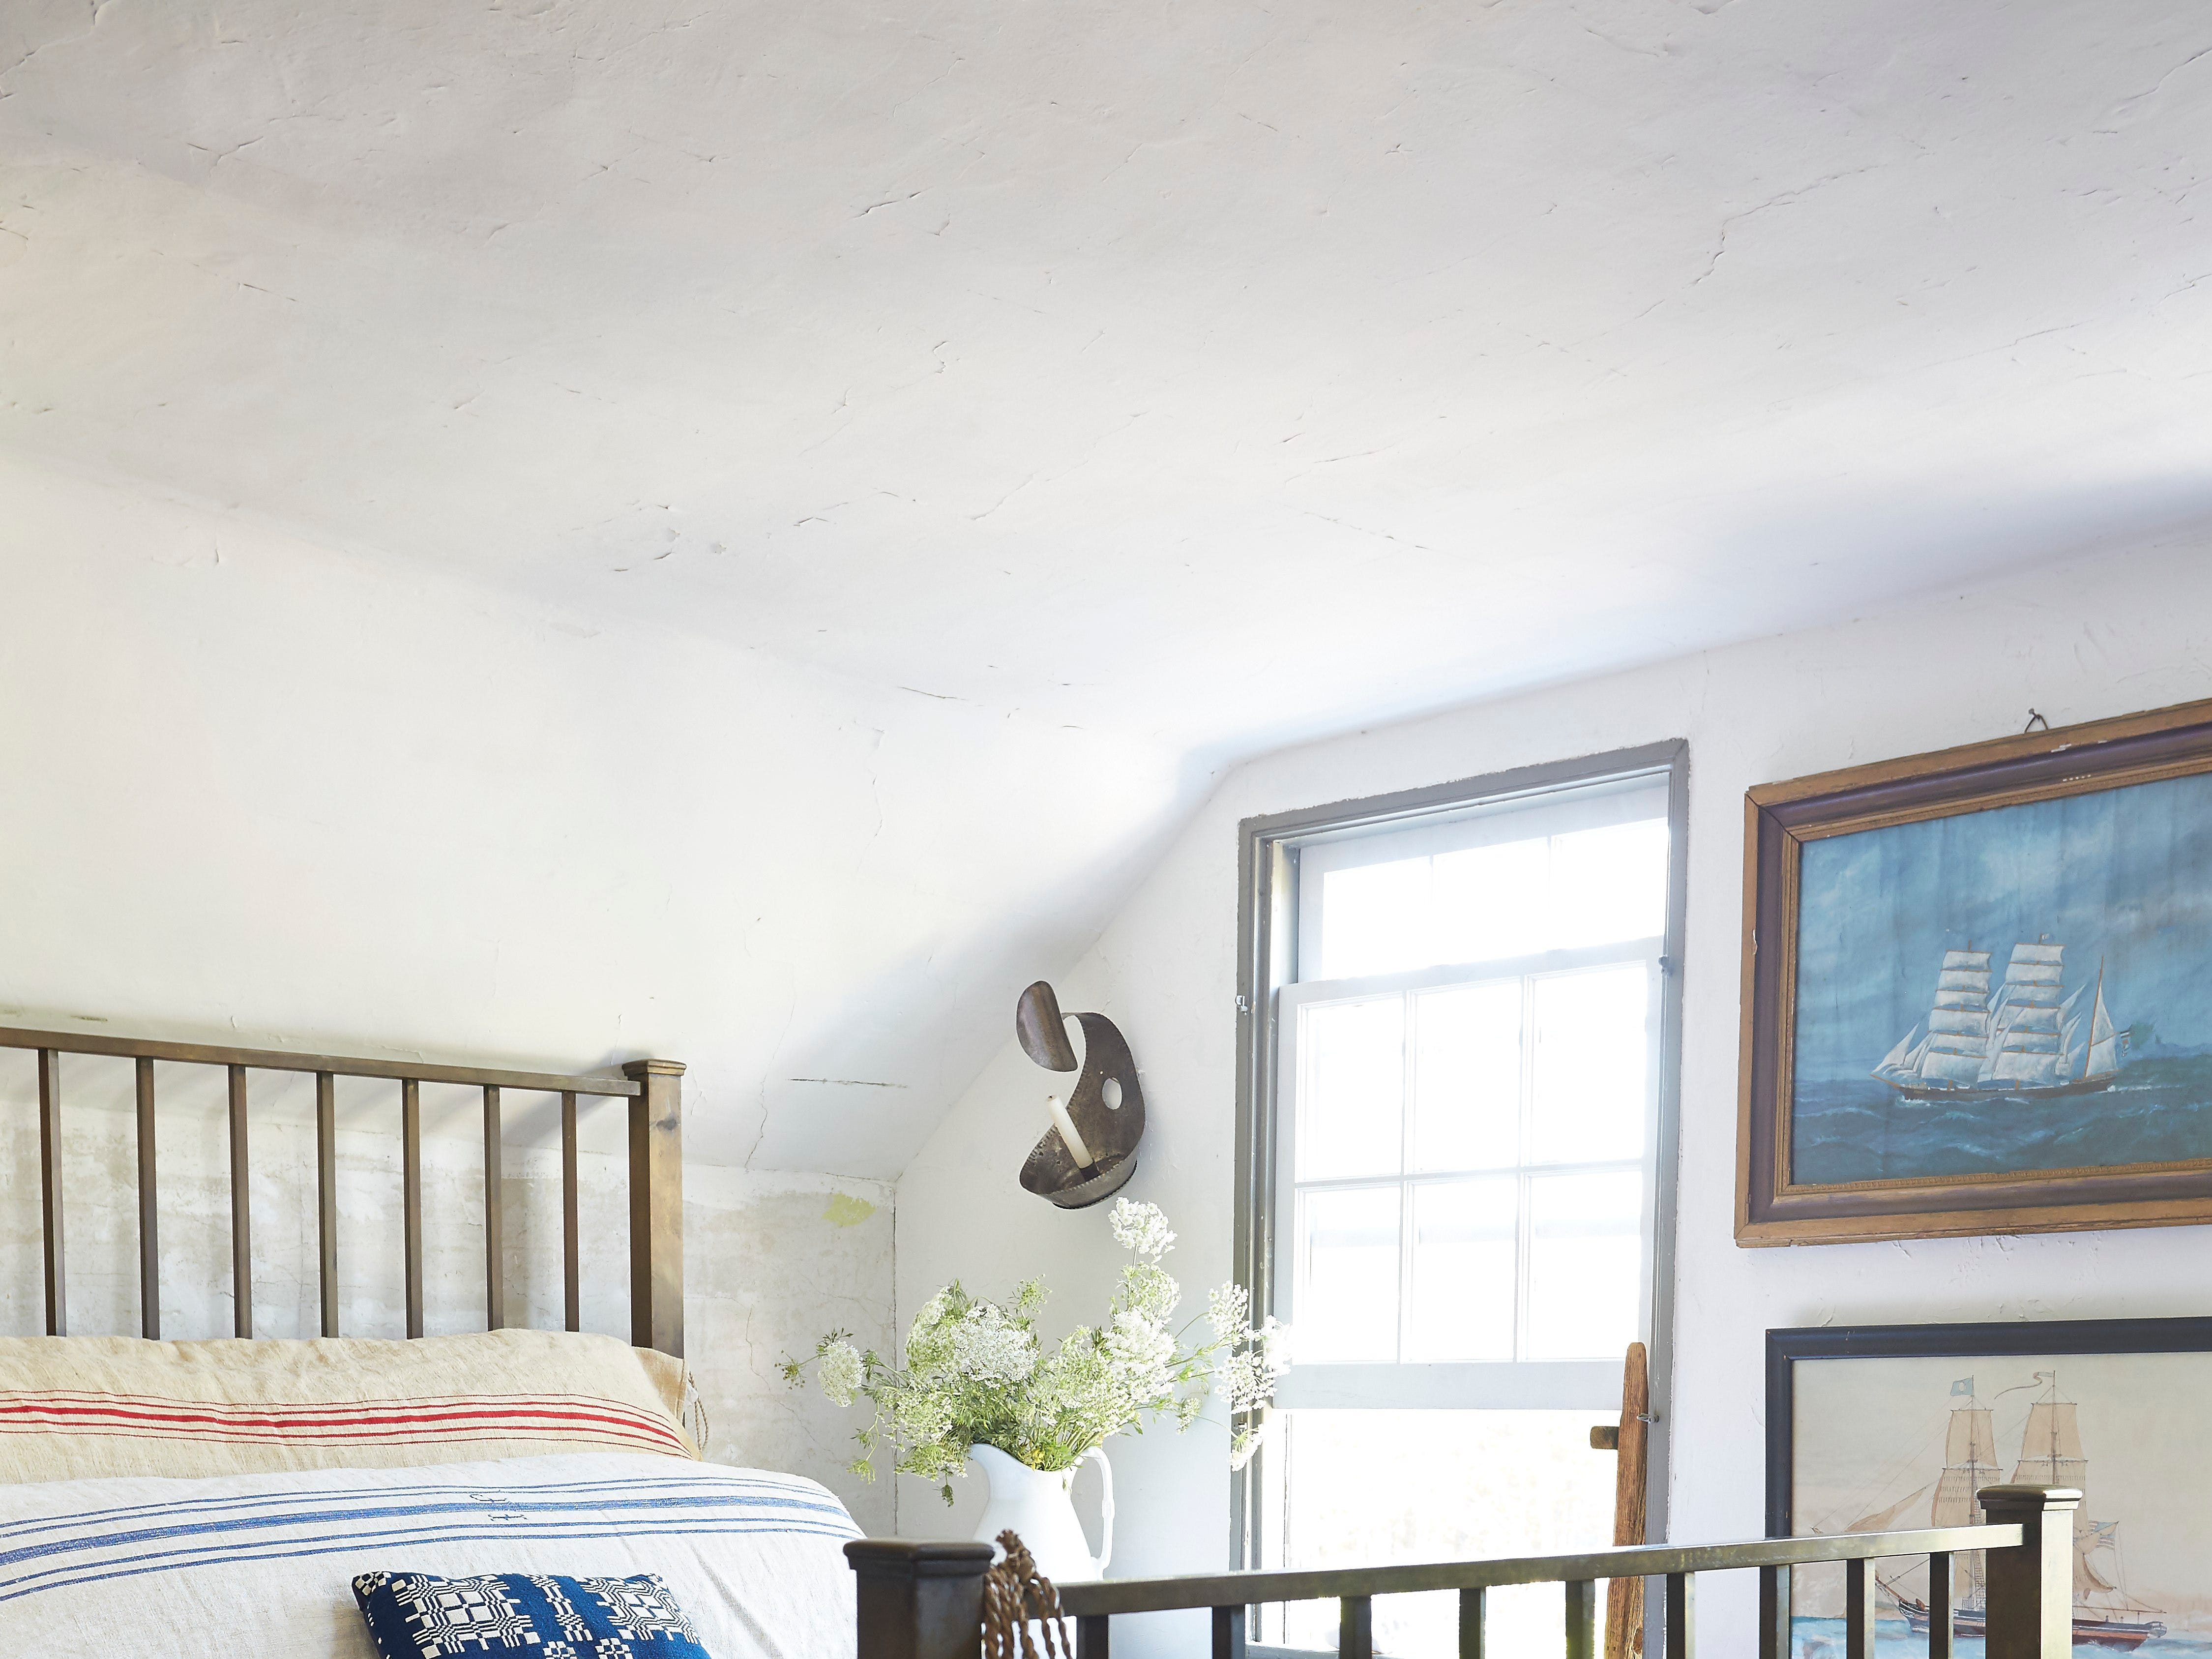 Whitewashed plaster walls make Nora's guest room, one of two tiny upstairs bedrooms dating back to the tavern's stagecoach days, both cheerful and inviting.